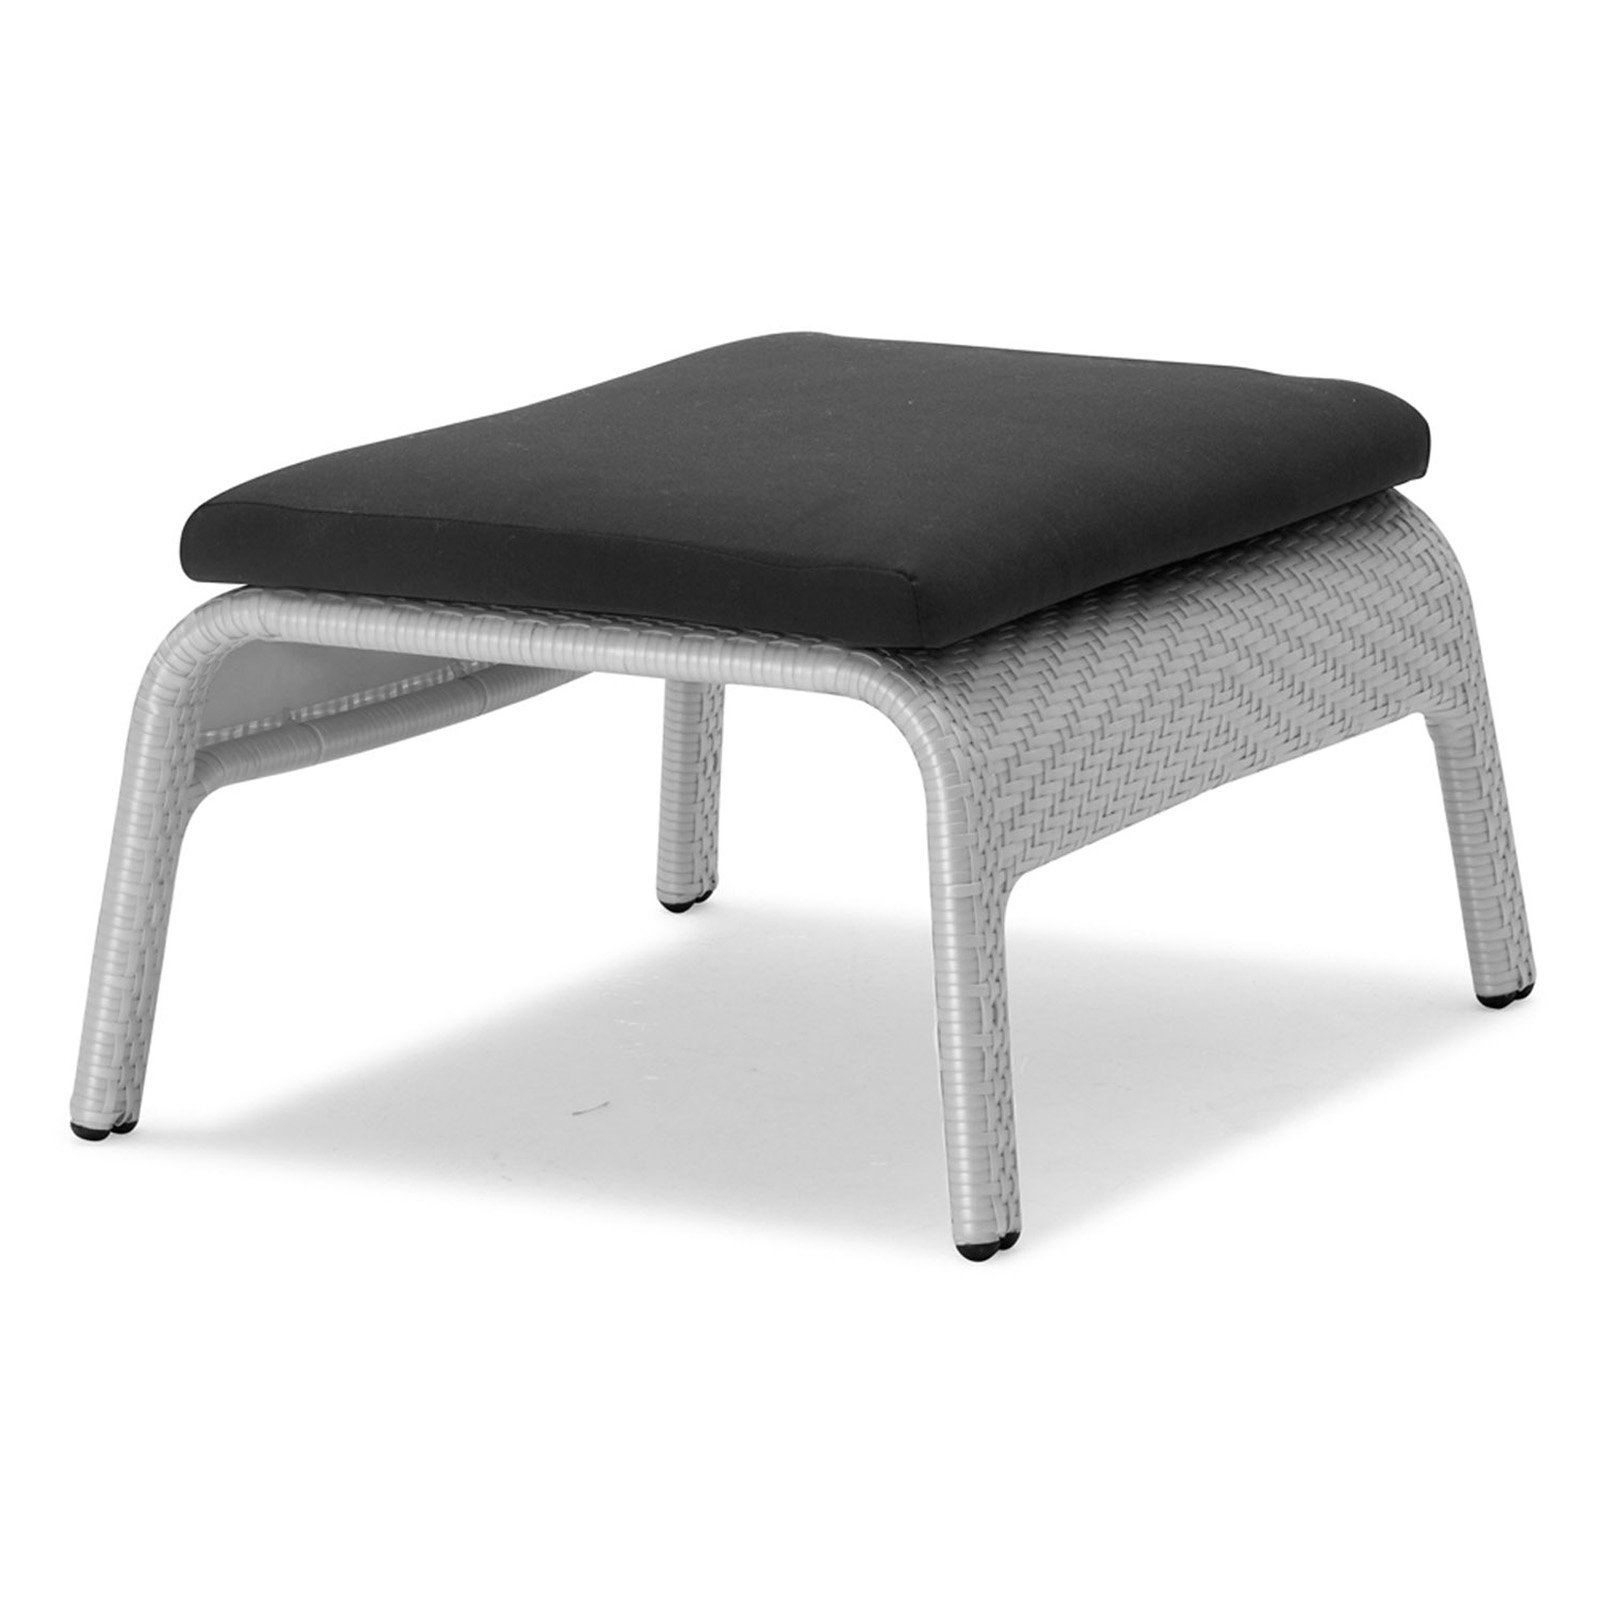 100 Essentials South Wicker Patio Foot Stool